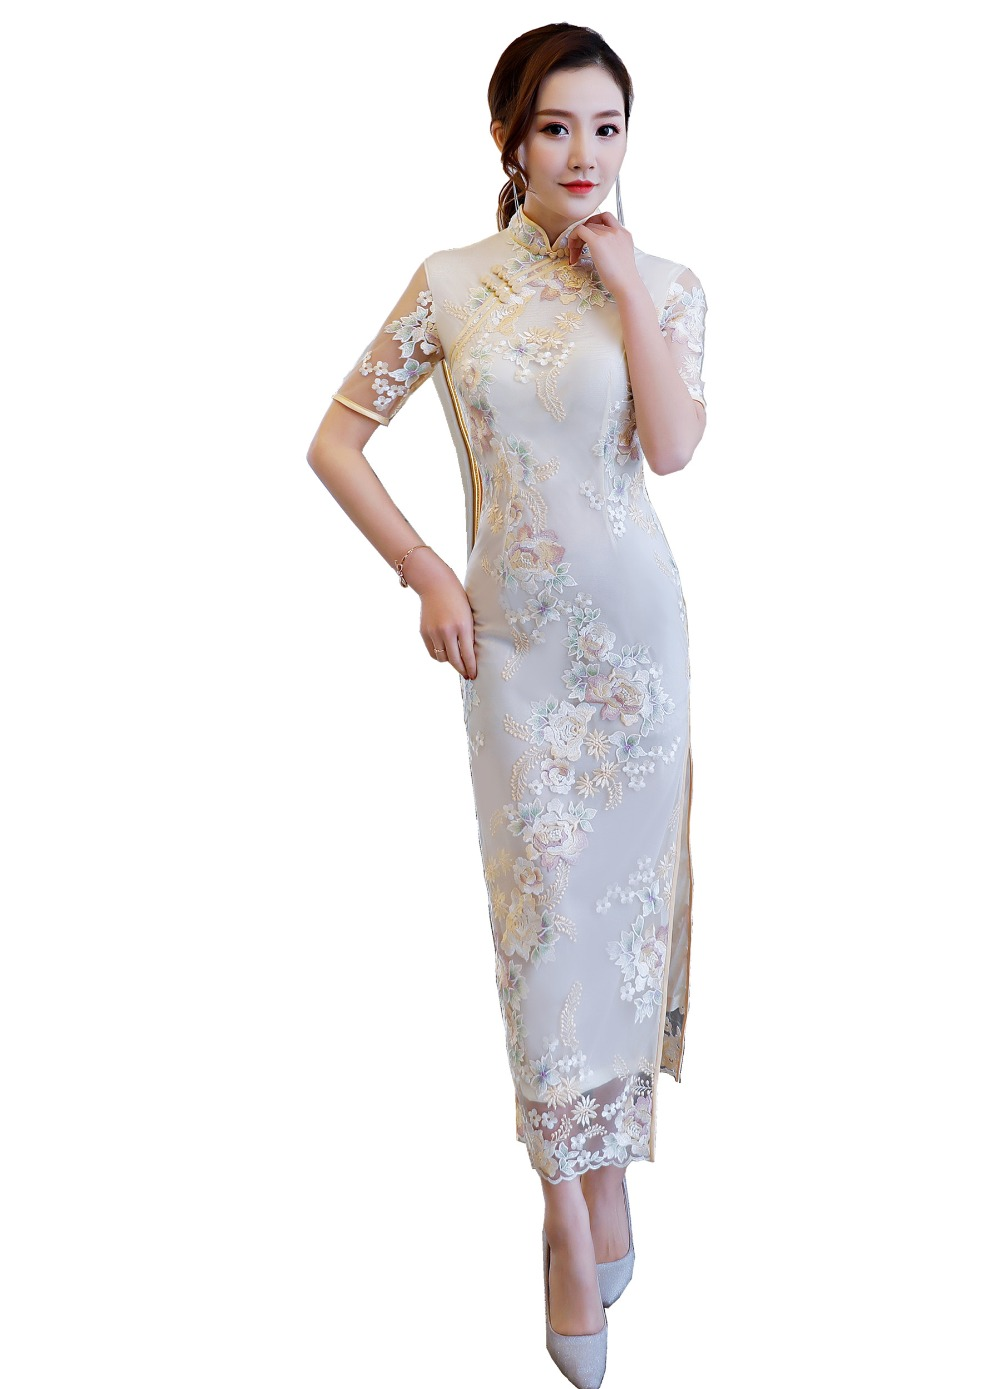 Shanghai Story chinese traditional clothing chinese style dresses long Cheongsam Short Sleeve Floral Embroidery Lace Qipao fashion summer style kids baby girls peacock dress cheongsam chinese qipao floral pattern dresses